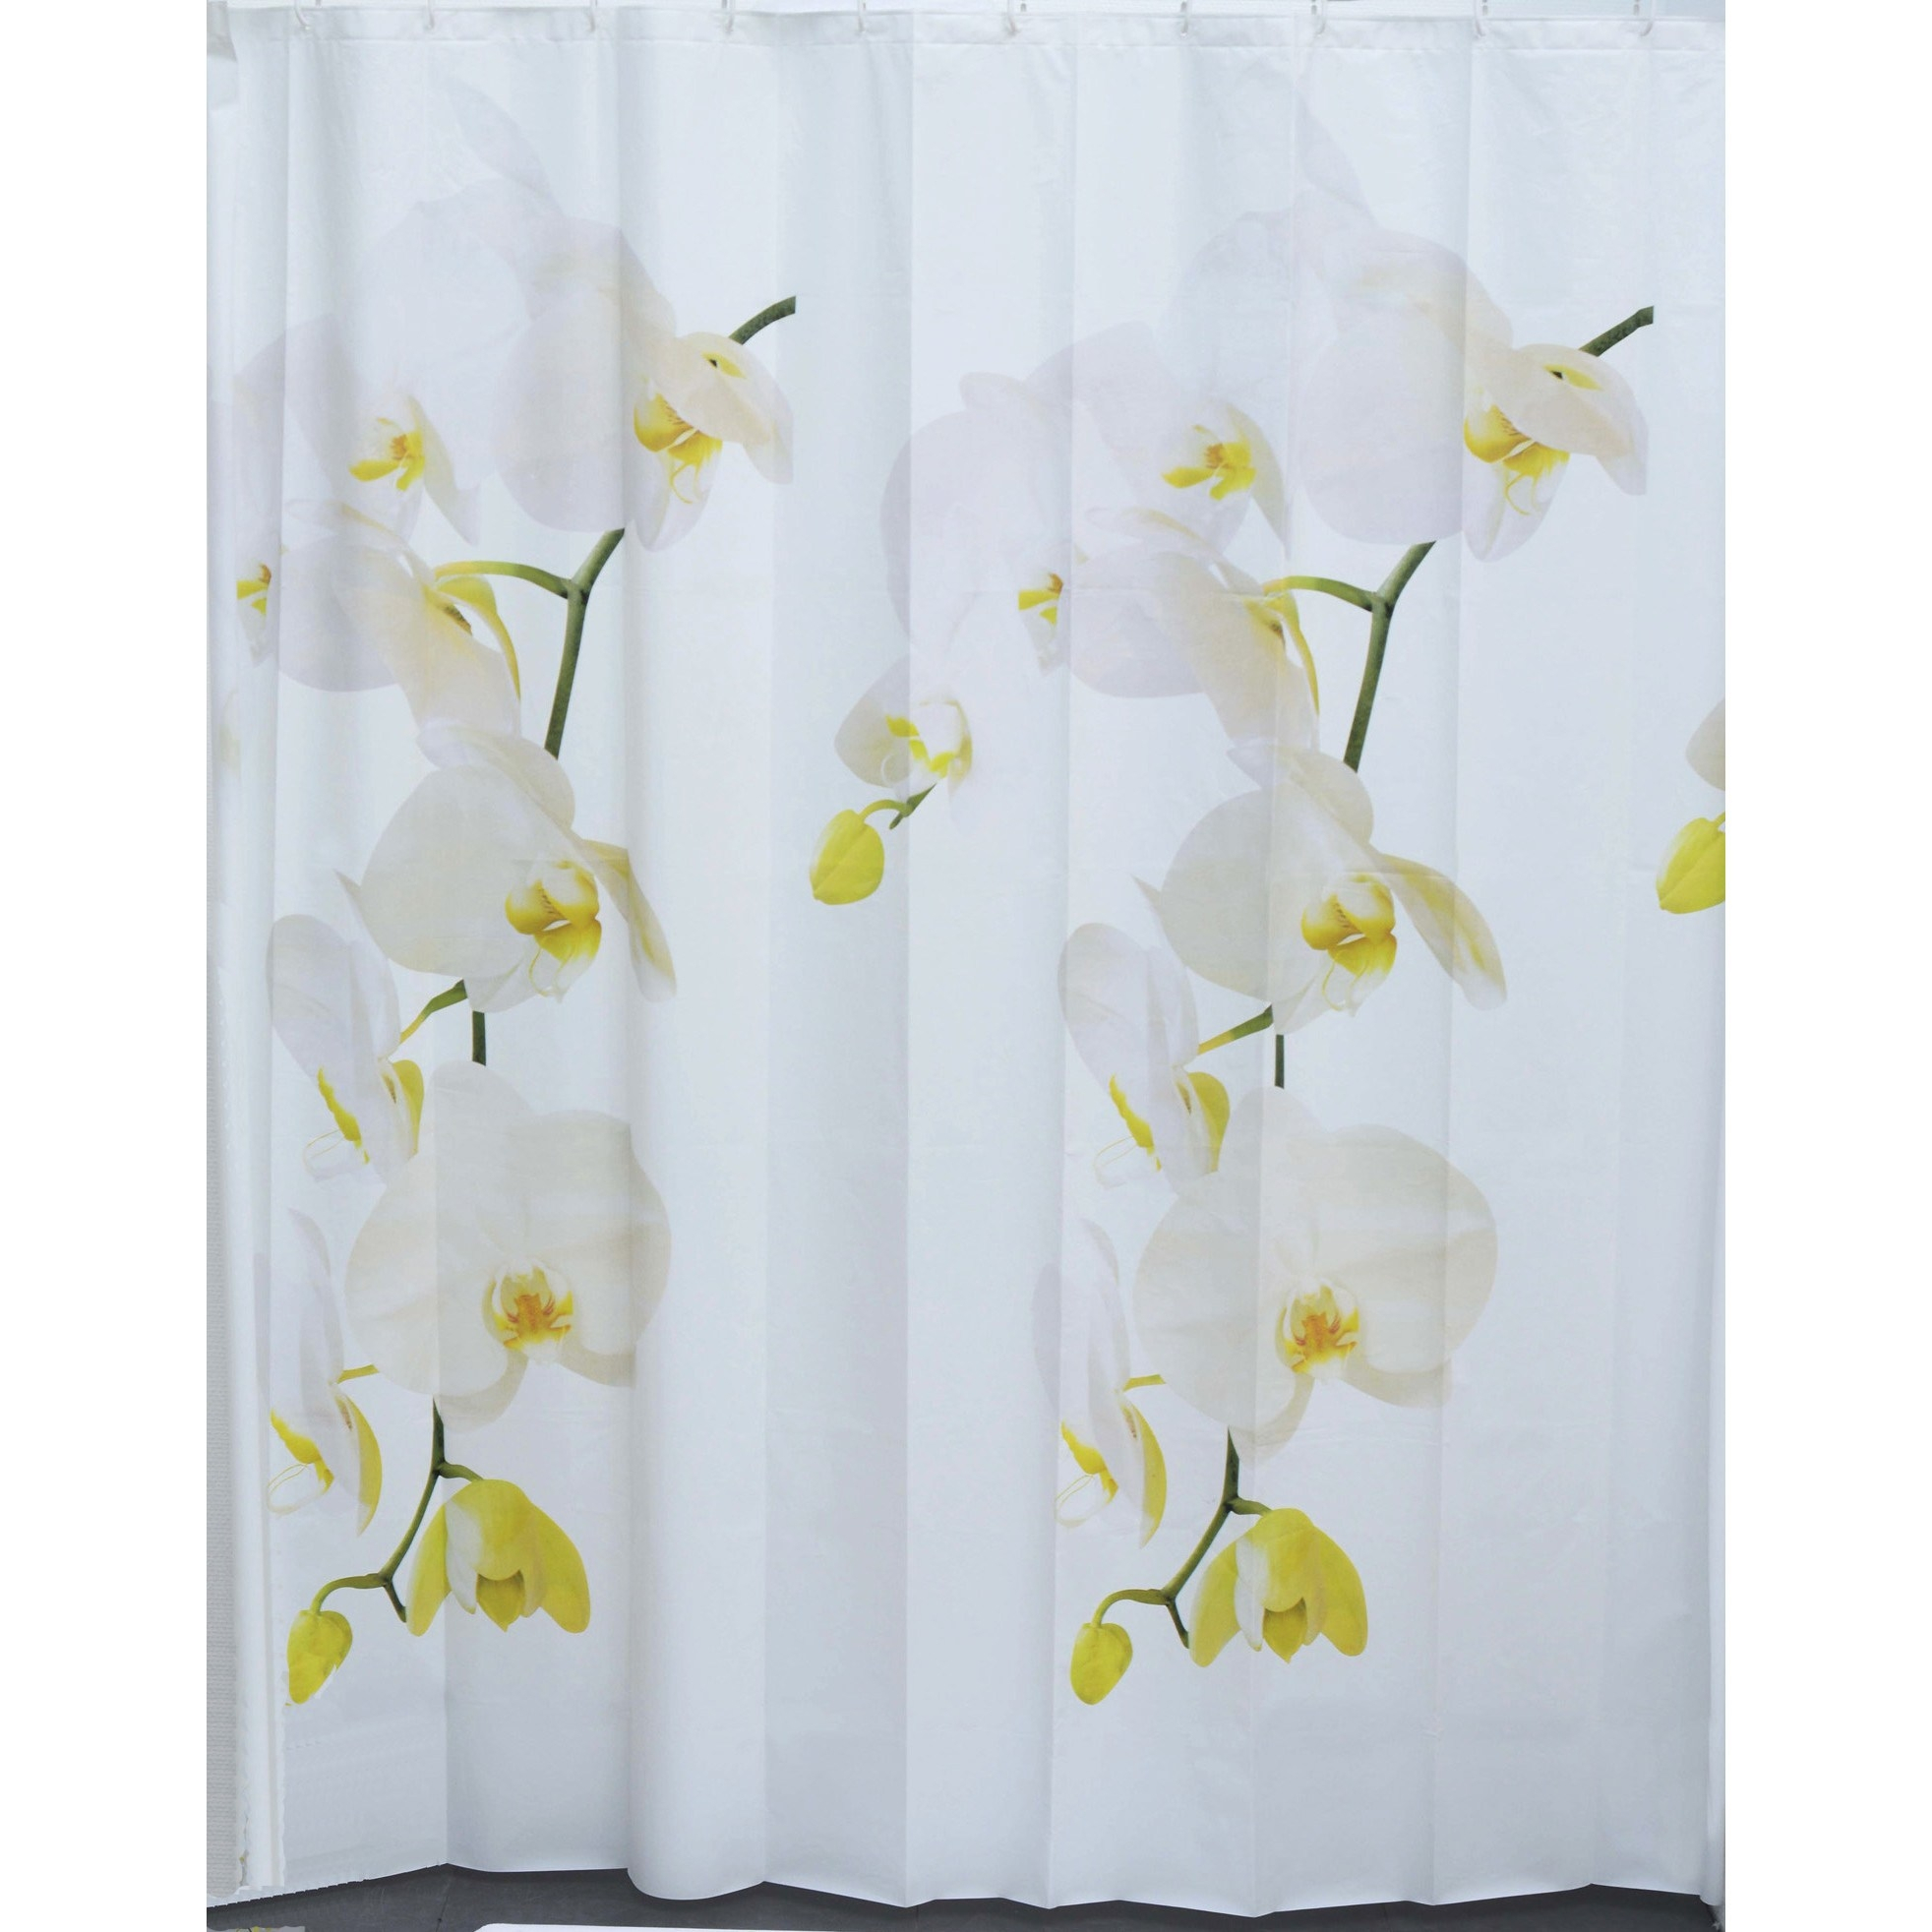 108 X 72 Hookless Shower Curtain • Shower Curtains Ideas